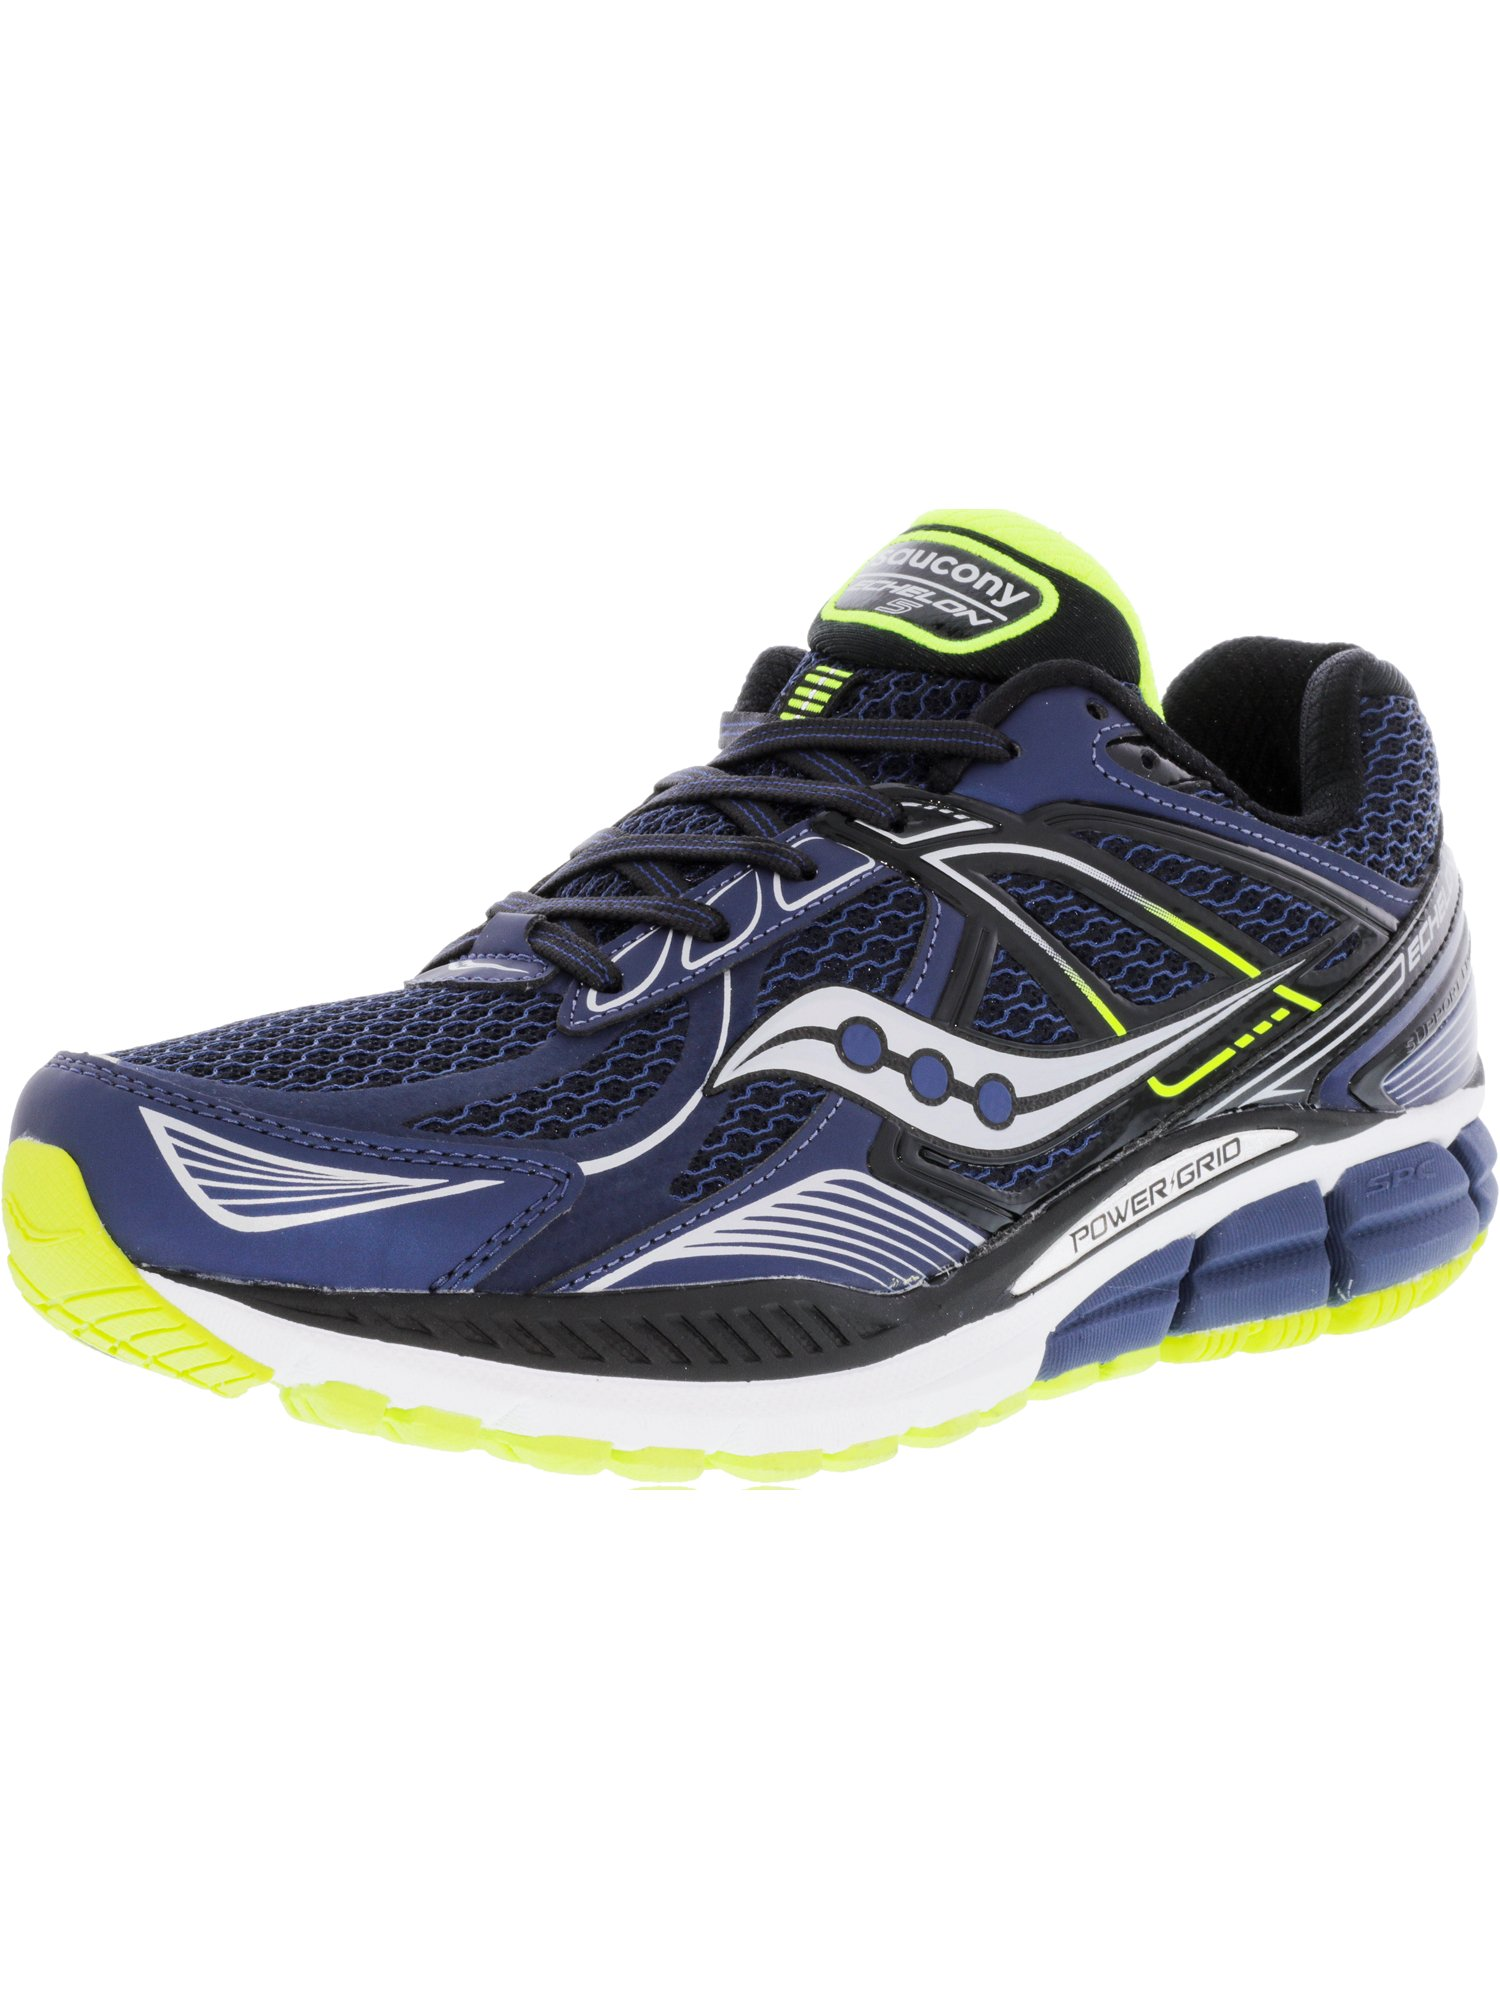 Saucony Men's Echelon 5 Navy   Black Cotton Ankle-High Running Shoe 7W by Saucony